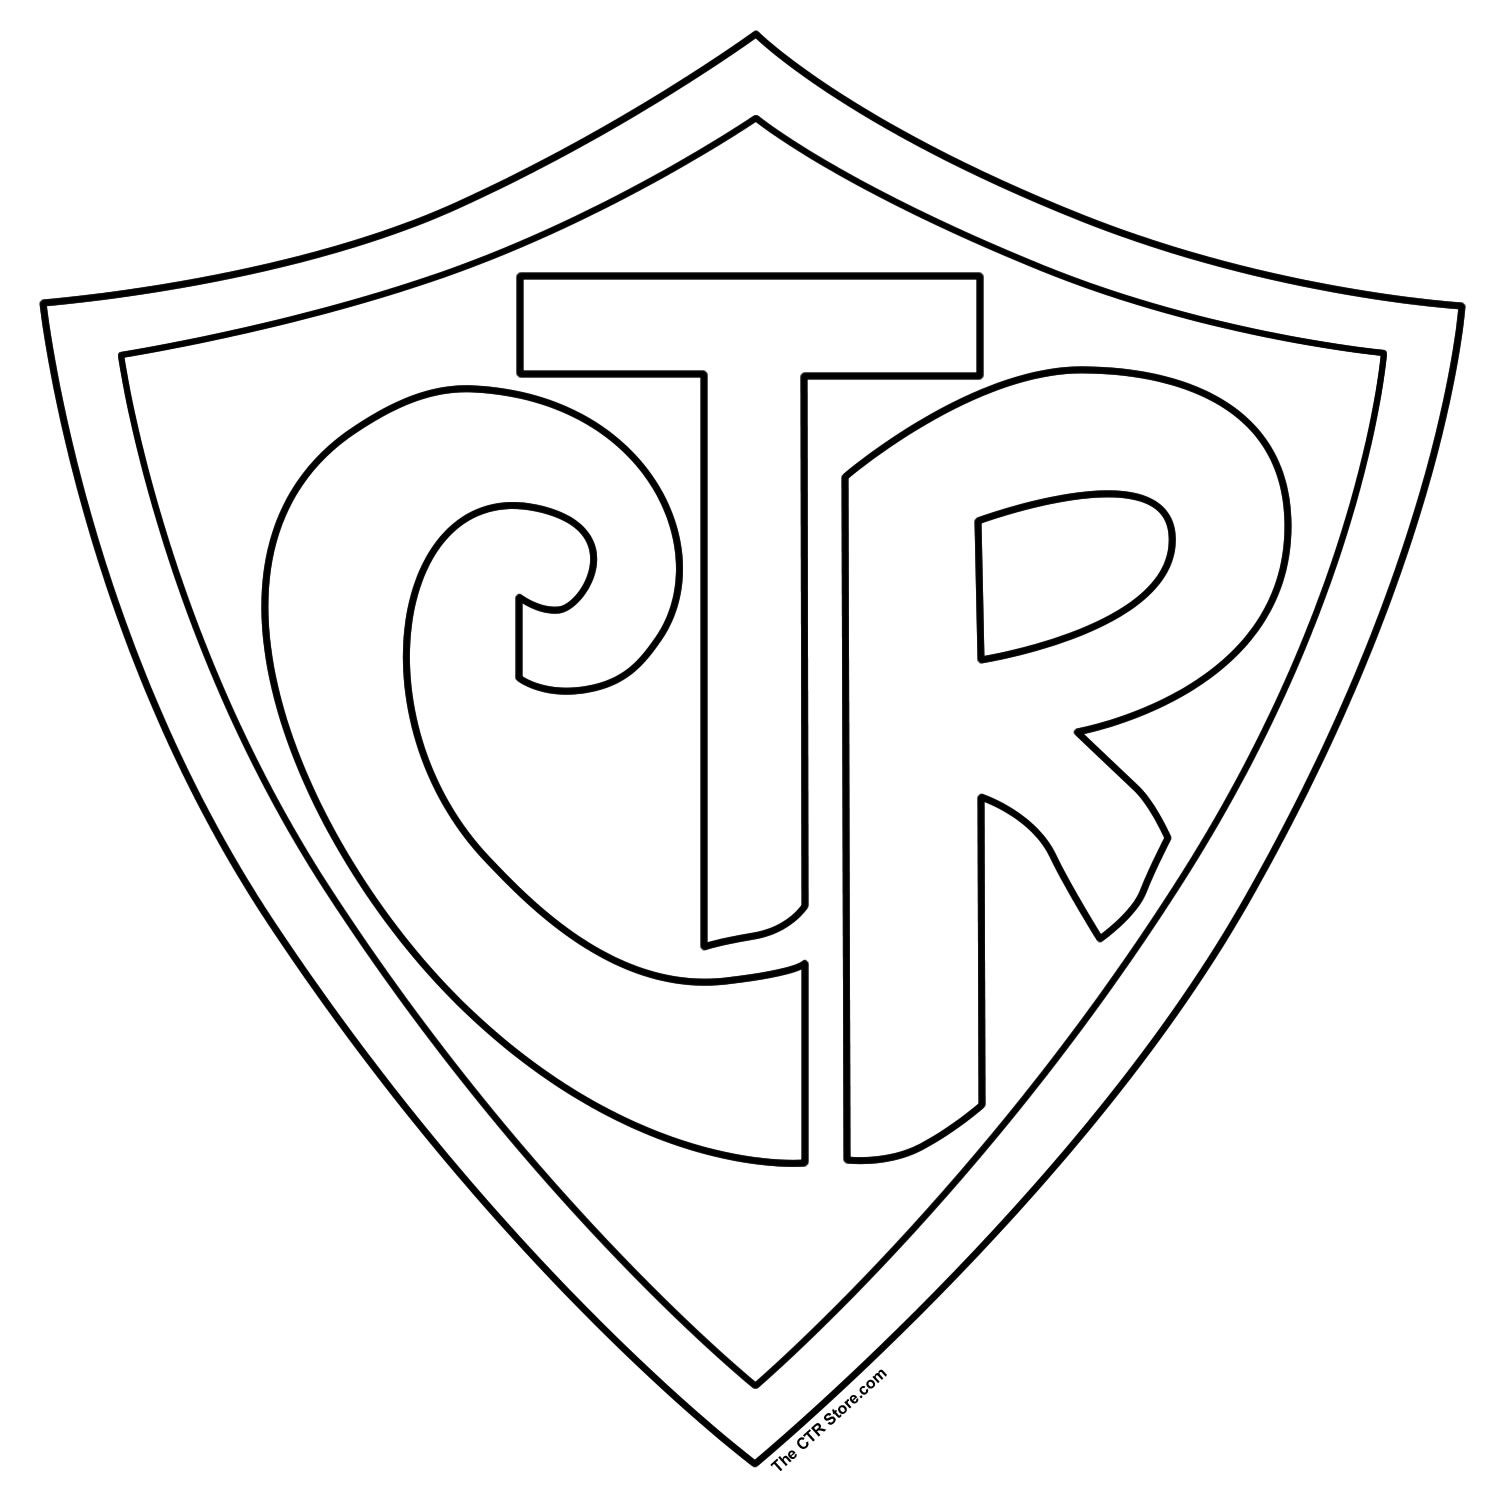 Ctr Shield Coloring Page Jpg Jpeg Image 1500x1508 Pixels Scaled 50 Ctr Shield Lds Coloring Pages Lds Clipart